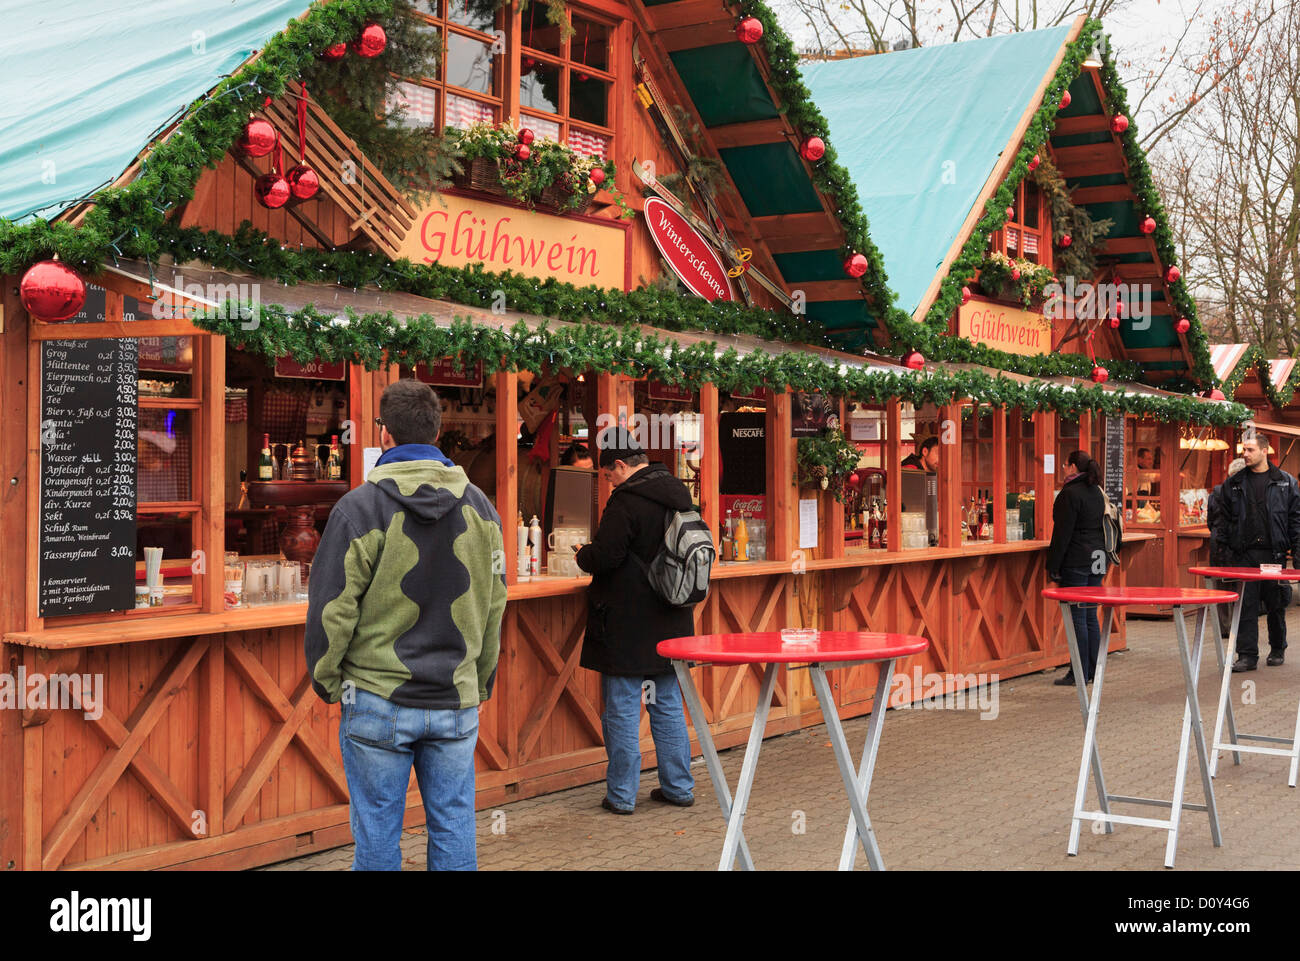 Customers buying at a Christmas market stall selling drinks and traditional warm Gluhwein at Alexanderplatz, Berlin - Stock Image